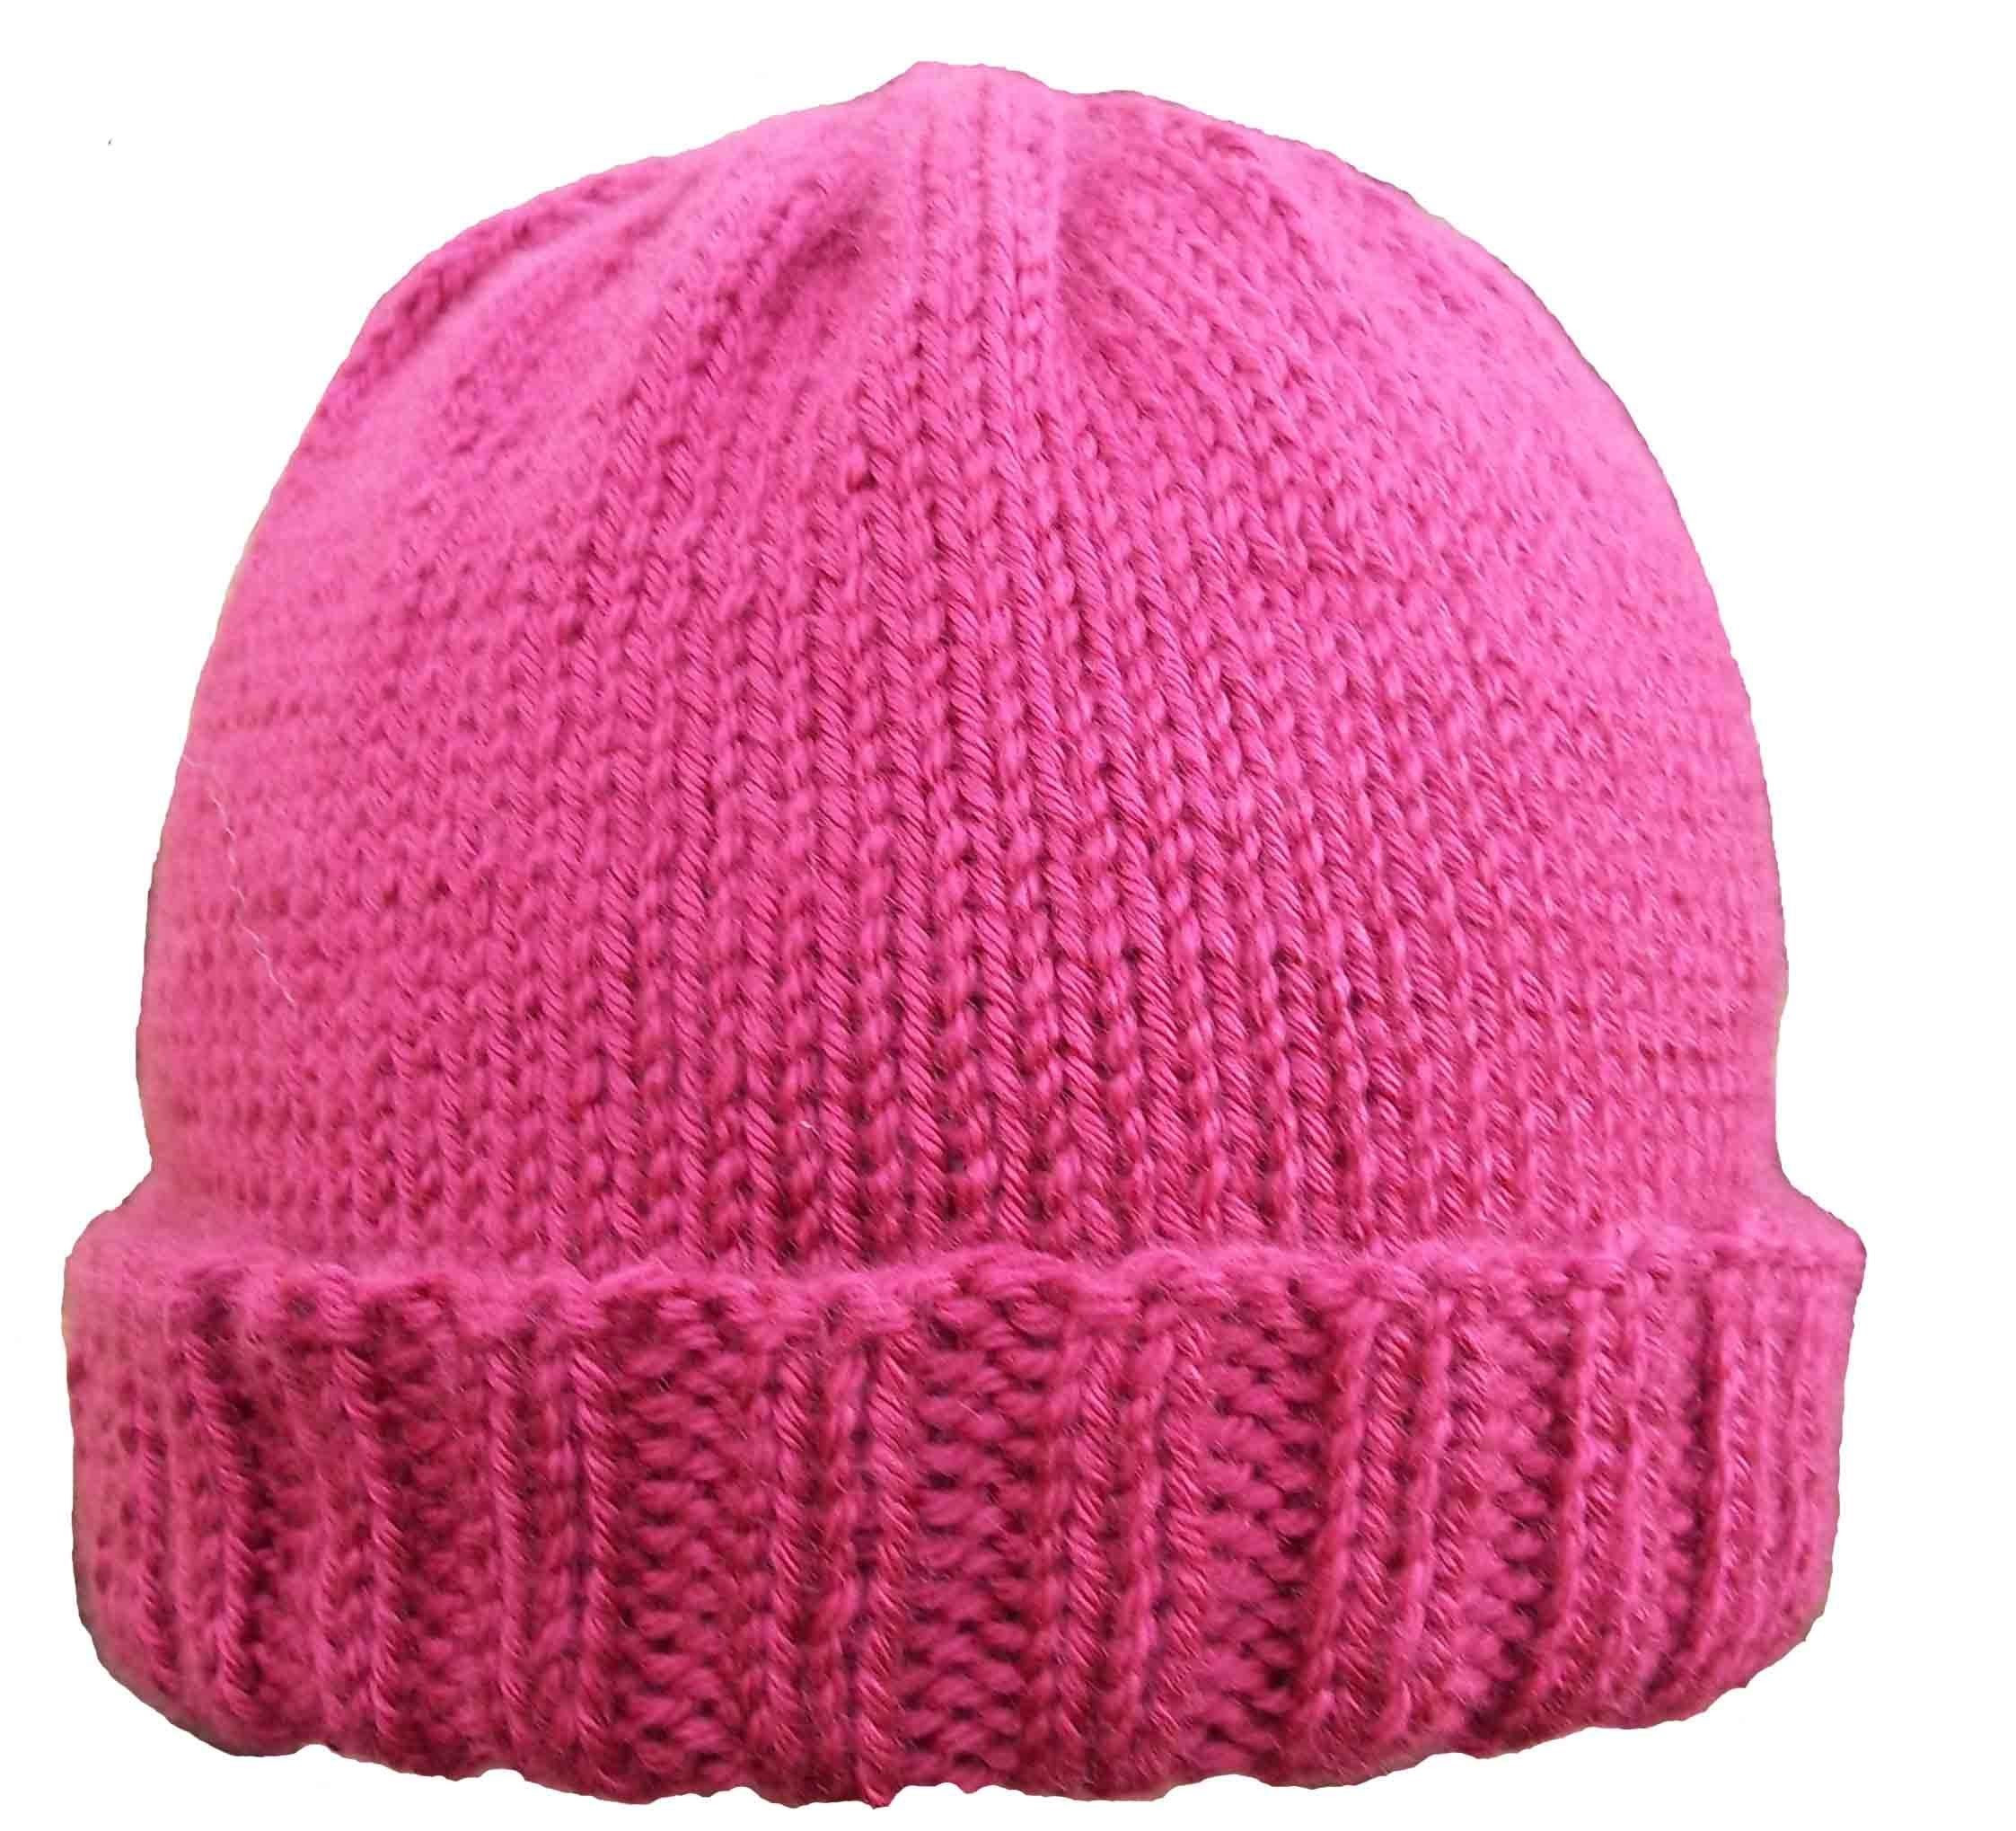 Unique How to Knit A Hat On A Round Loom Circle Loom Knitting Of Superb 50 Images Circle Loom Knitting